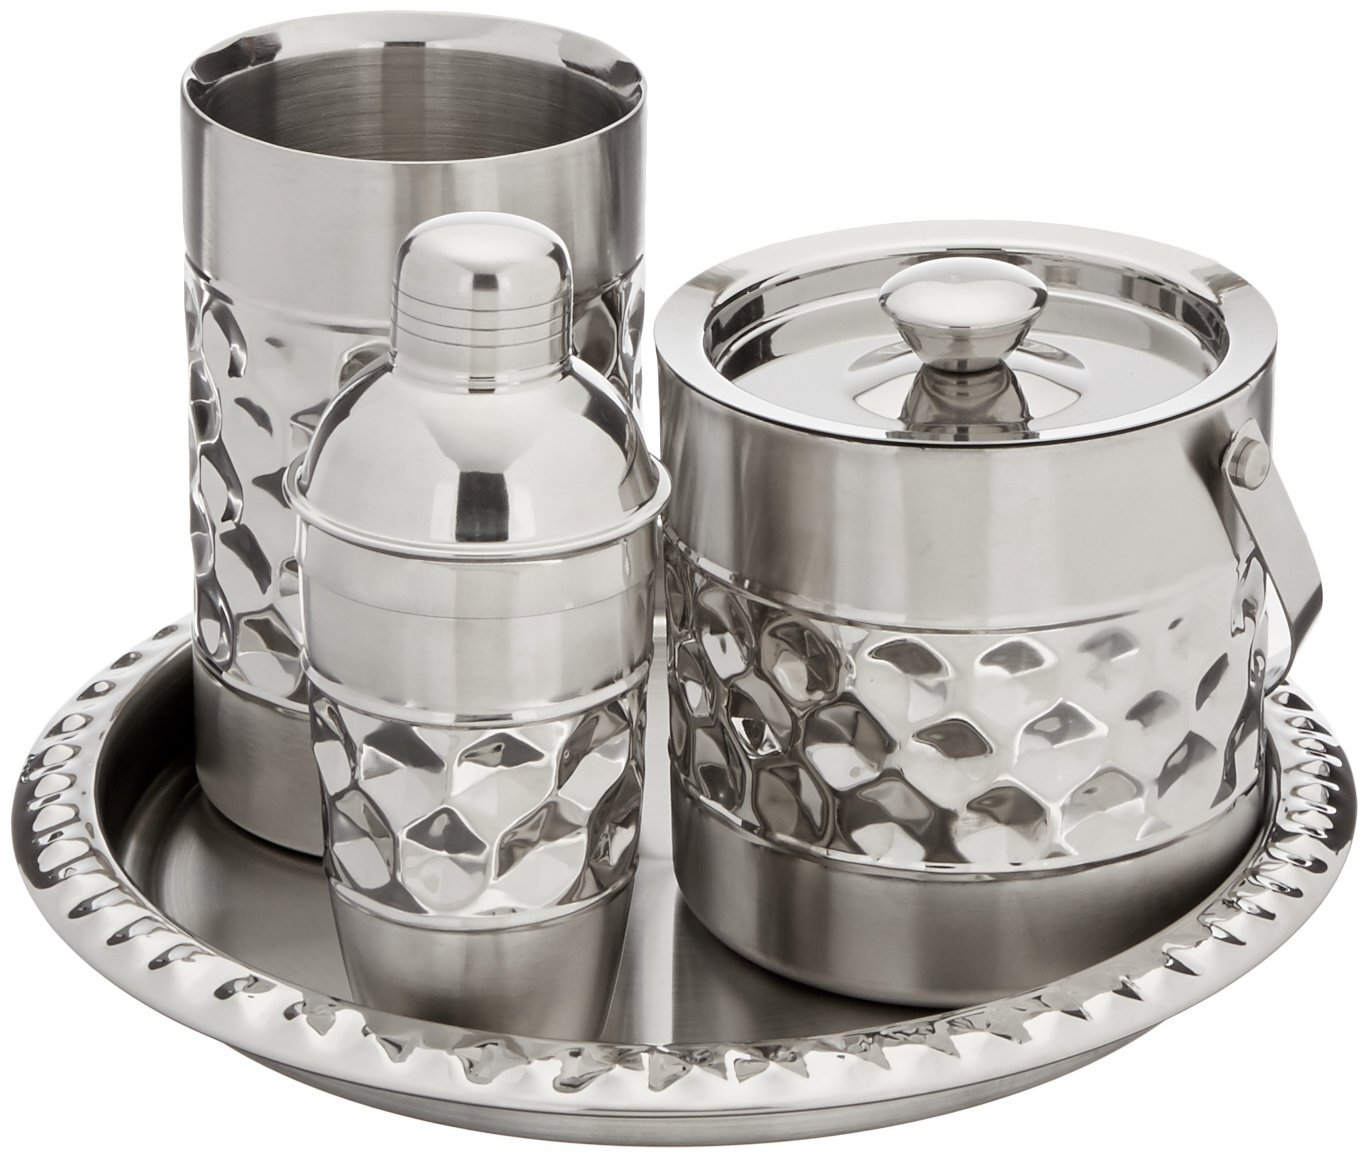 Cocktail Shaker and Serving Tray Wine Chiller Including Ice Bucket Francois et Mimi Stainless Steel Bar Tools Set